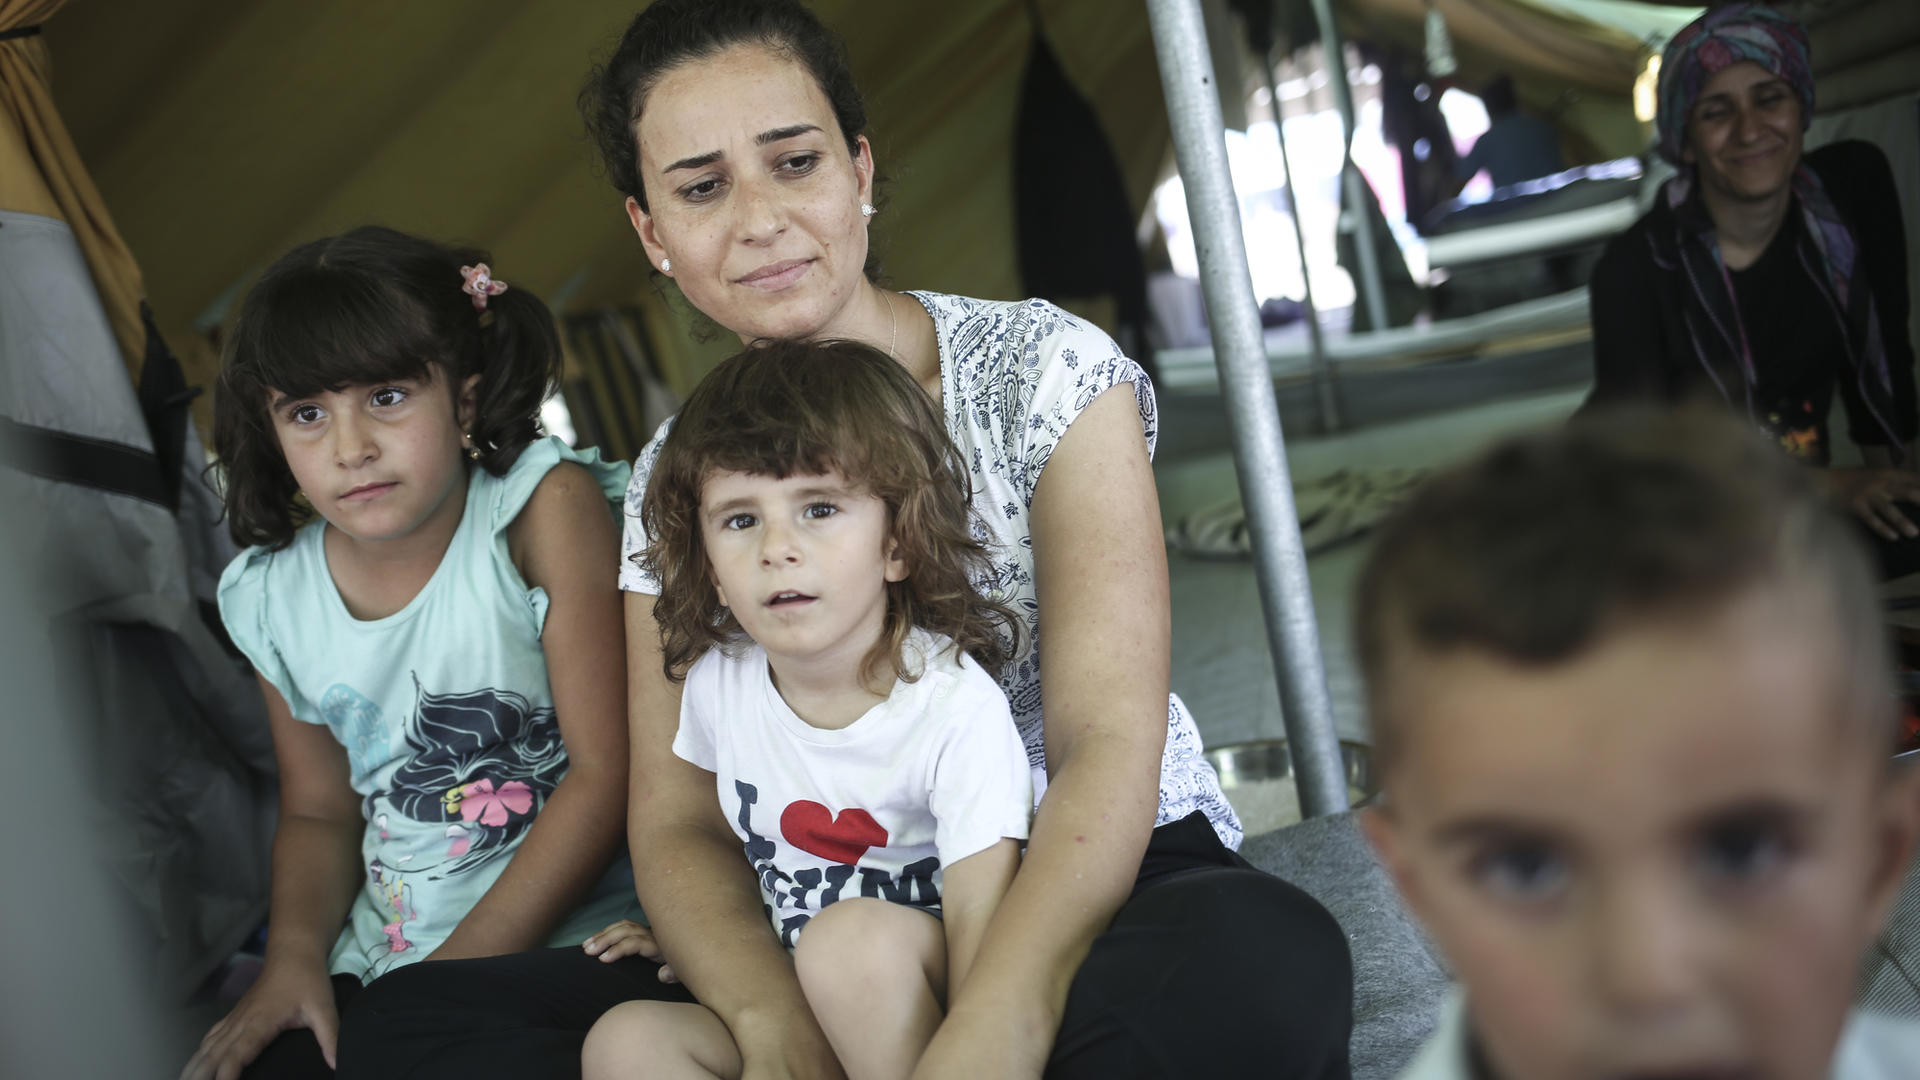 Syrian family in Alexandria refugee camp in Greece.